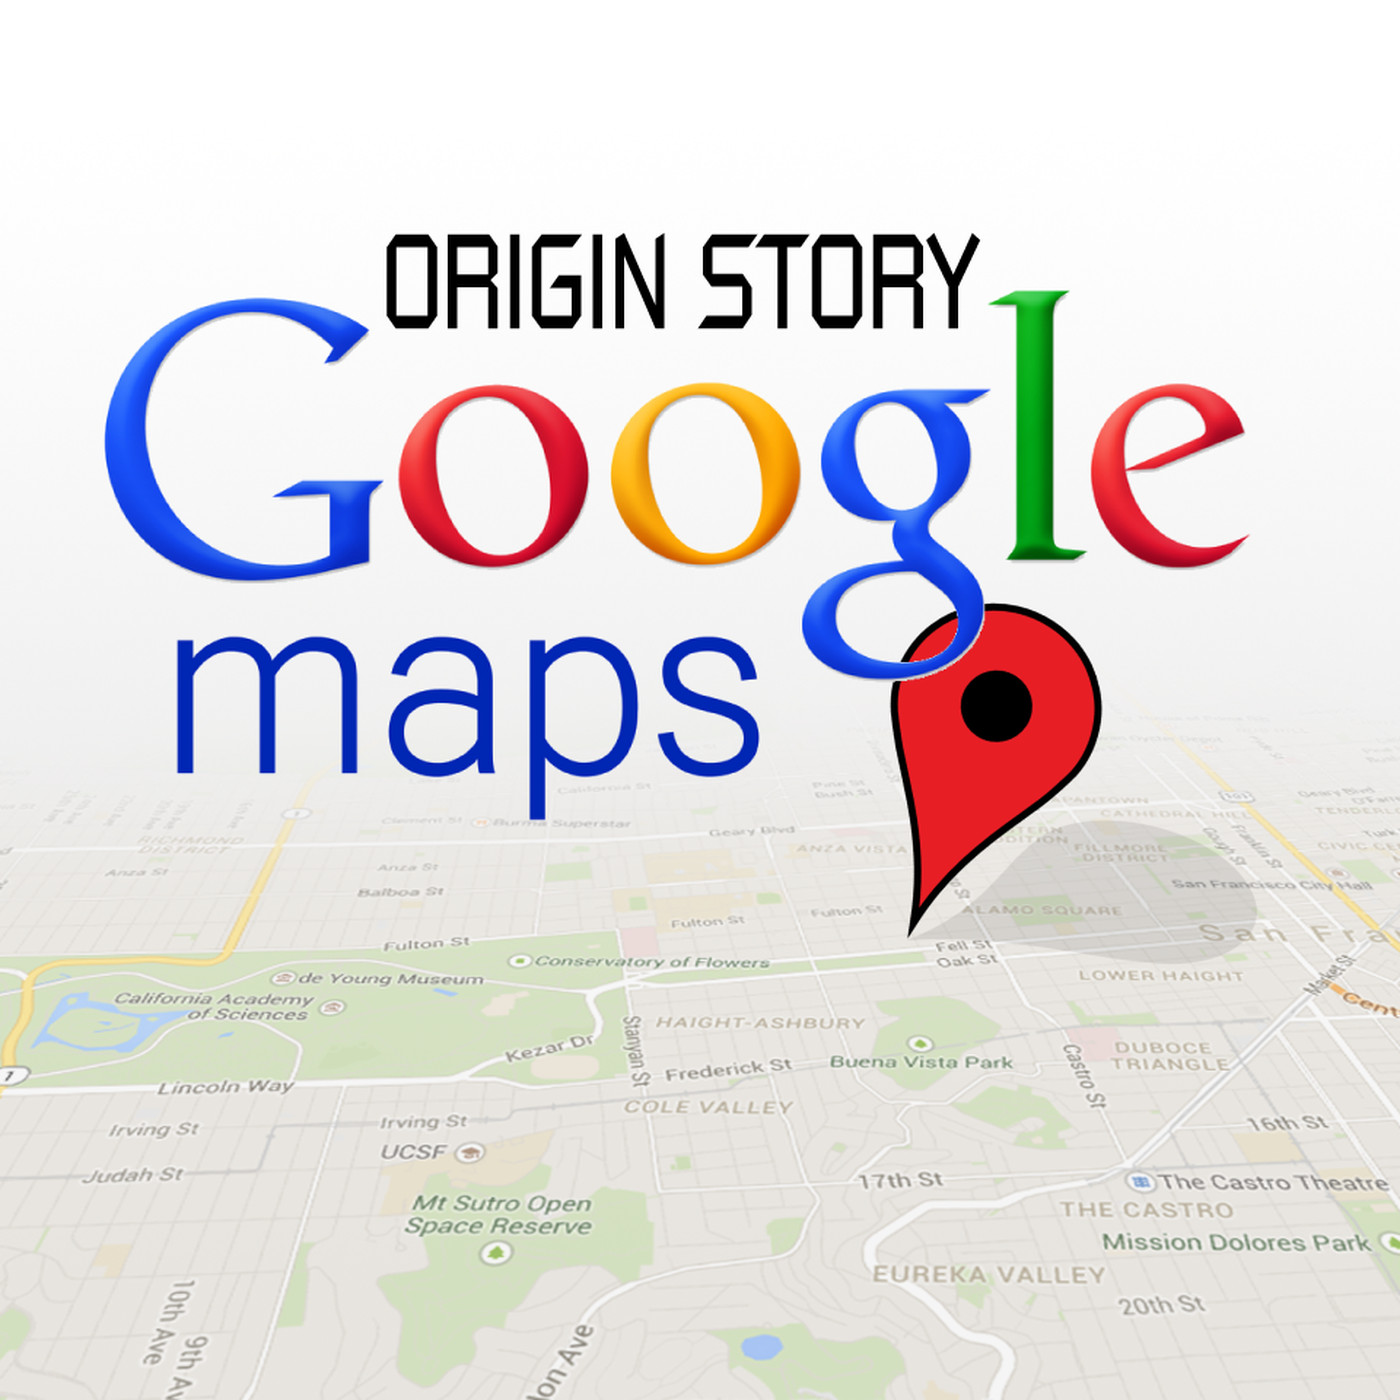 Ten Years of Google Maps, From Slashdot to Ground Truth - Vox on